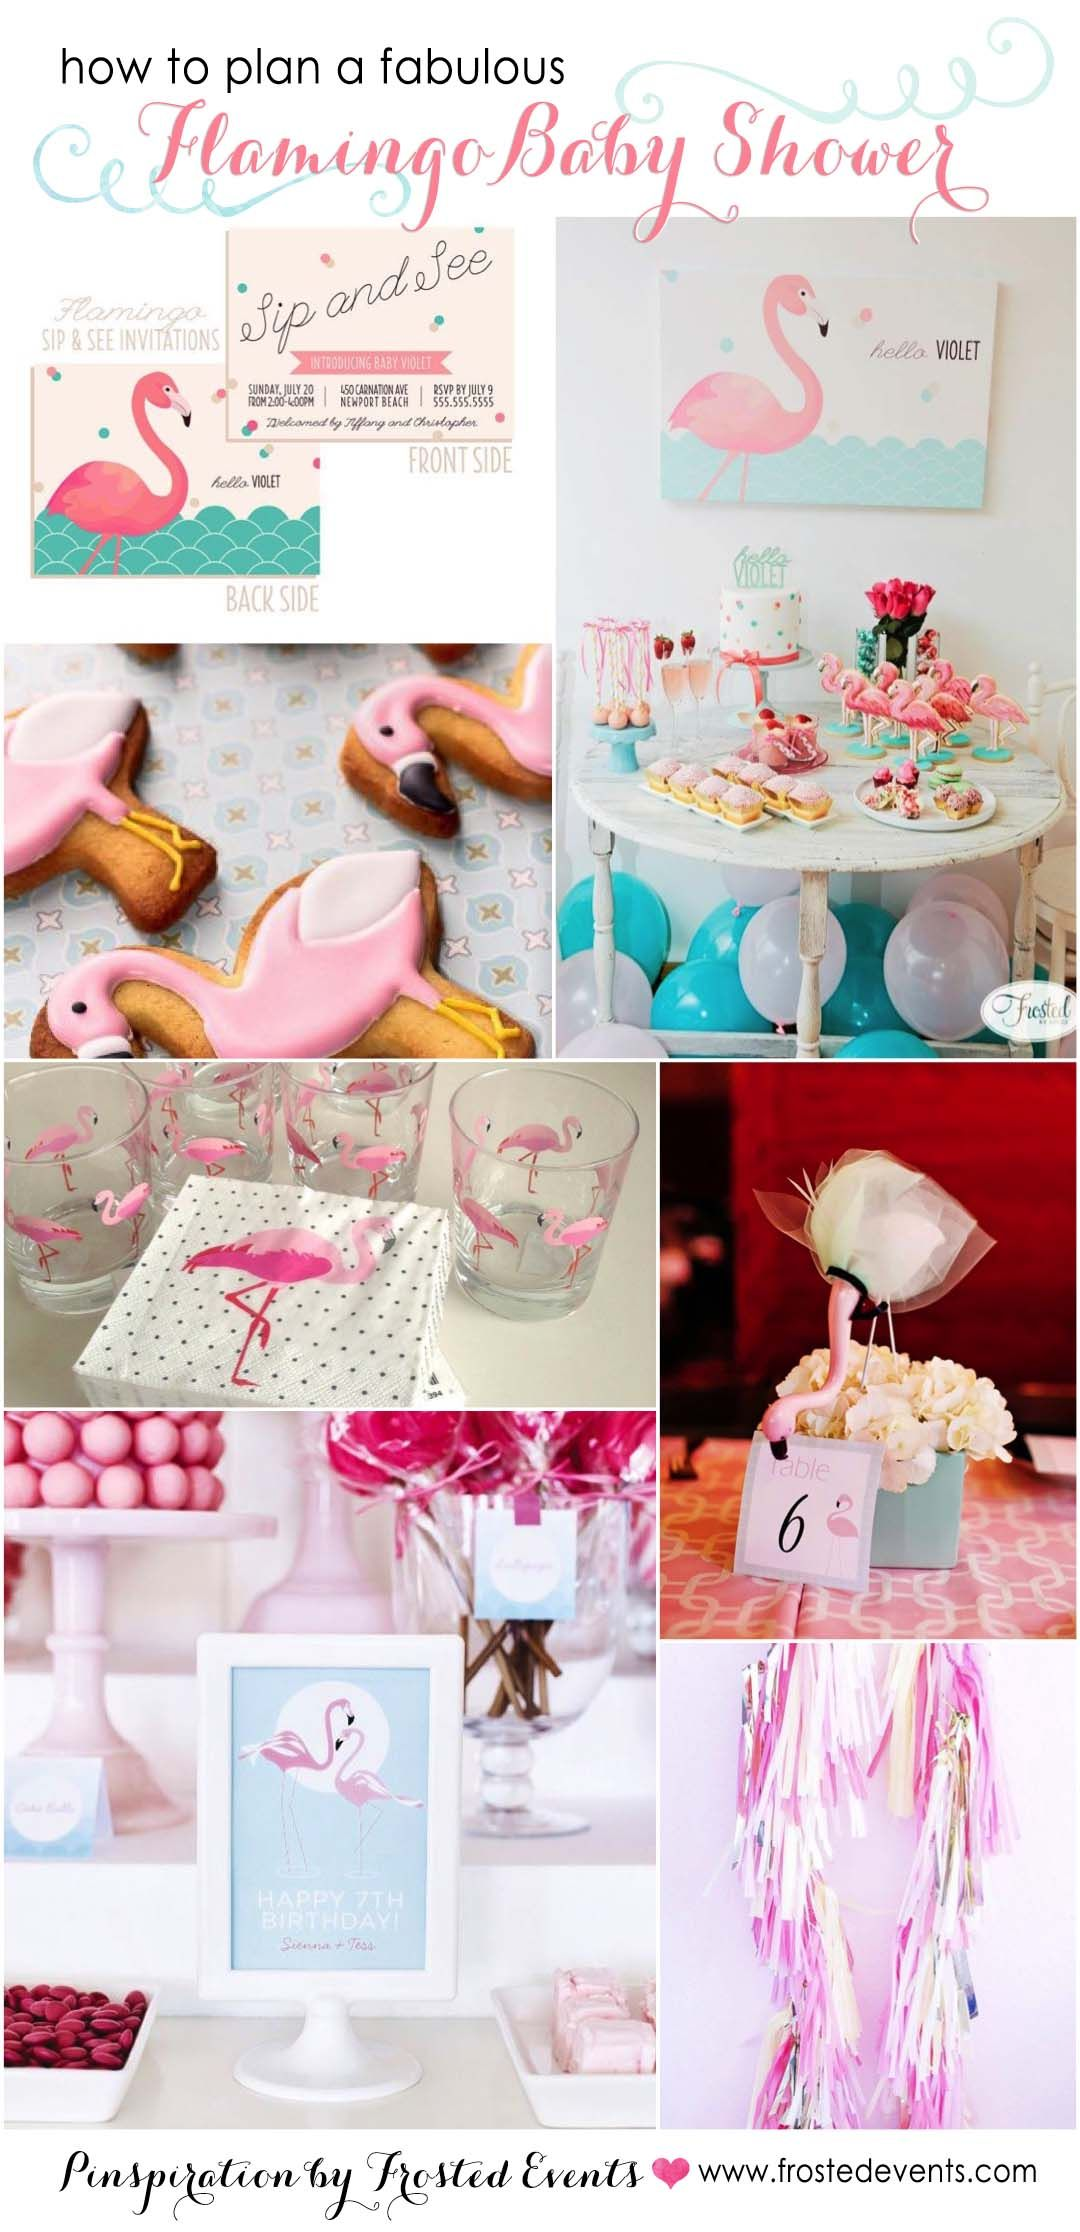 Fabulous Flamingo Theme Baby Shower Inspiration Board Via Frosted Events Frostedevents Pink Party And Mint Gold Ideas